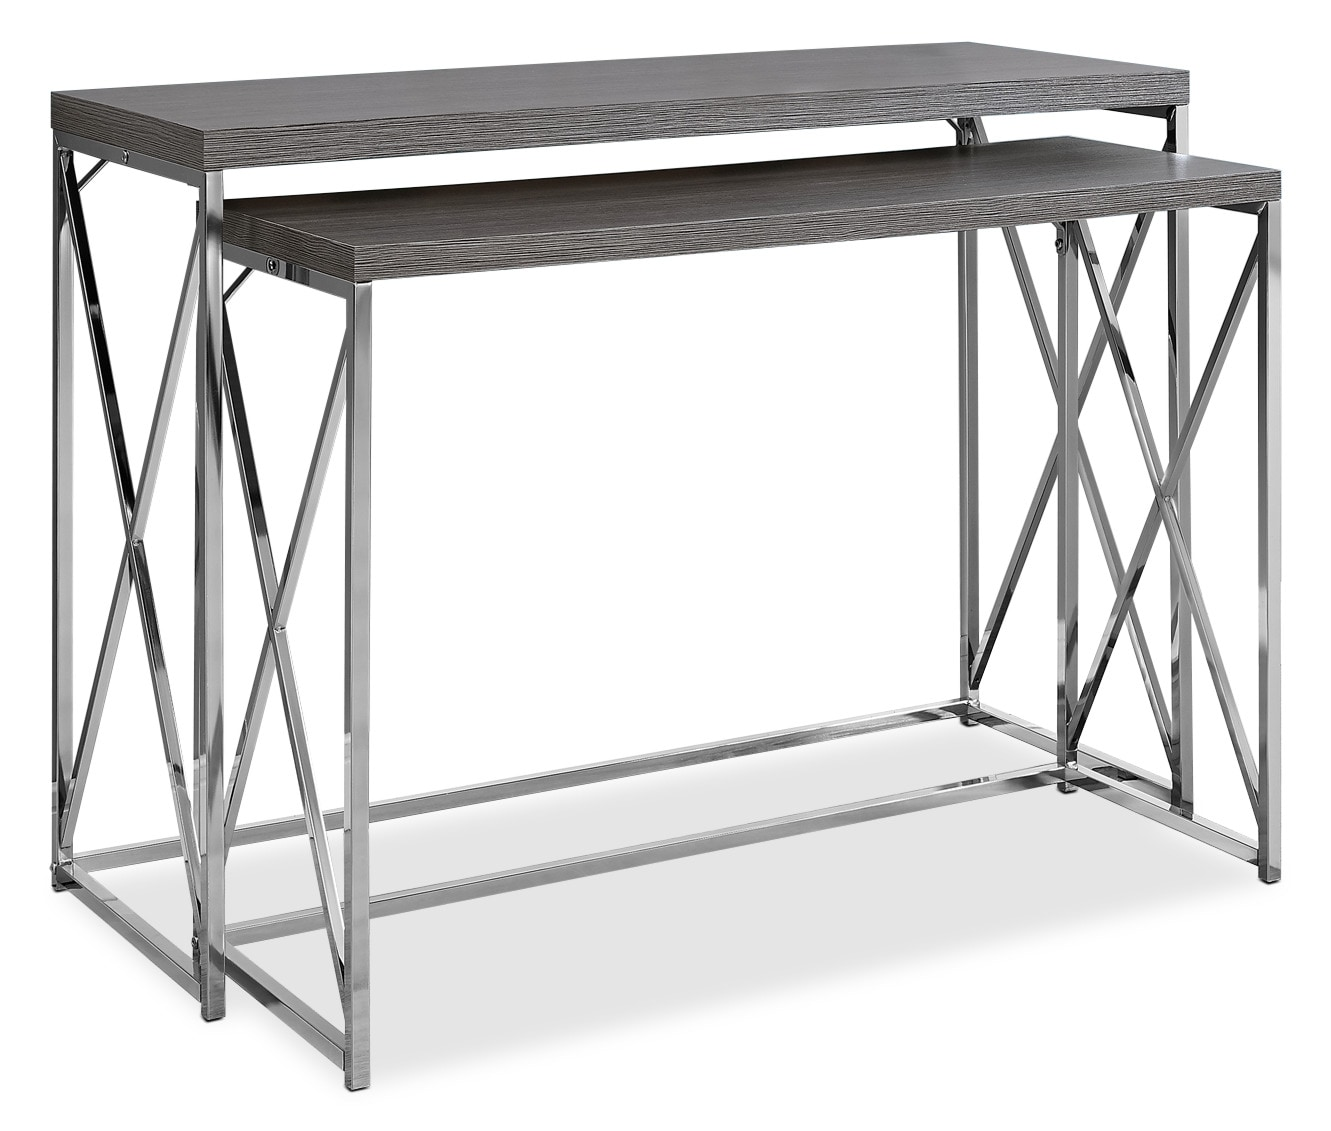 Stark 2-Piece Sofa Table - Wood-Grain Grey